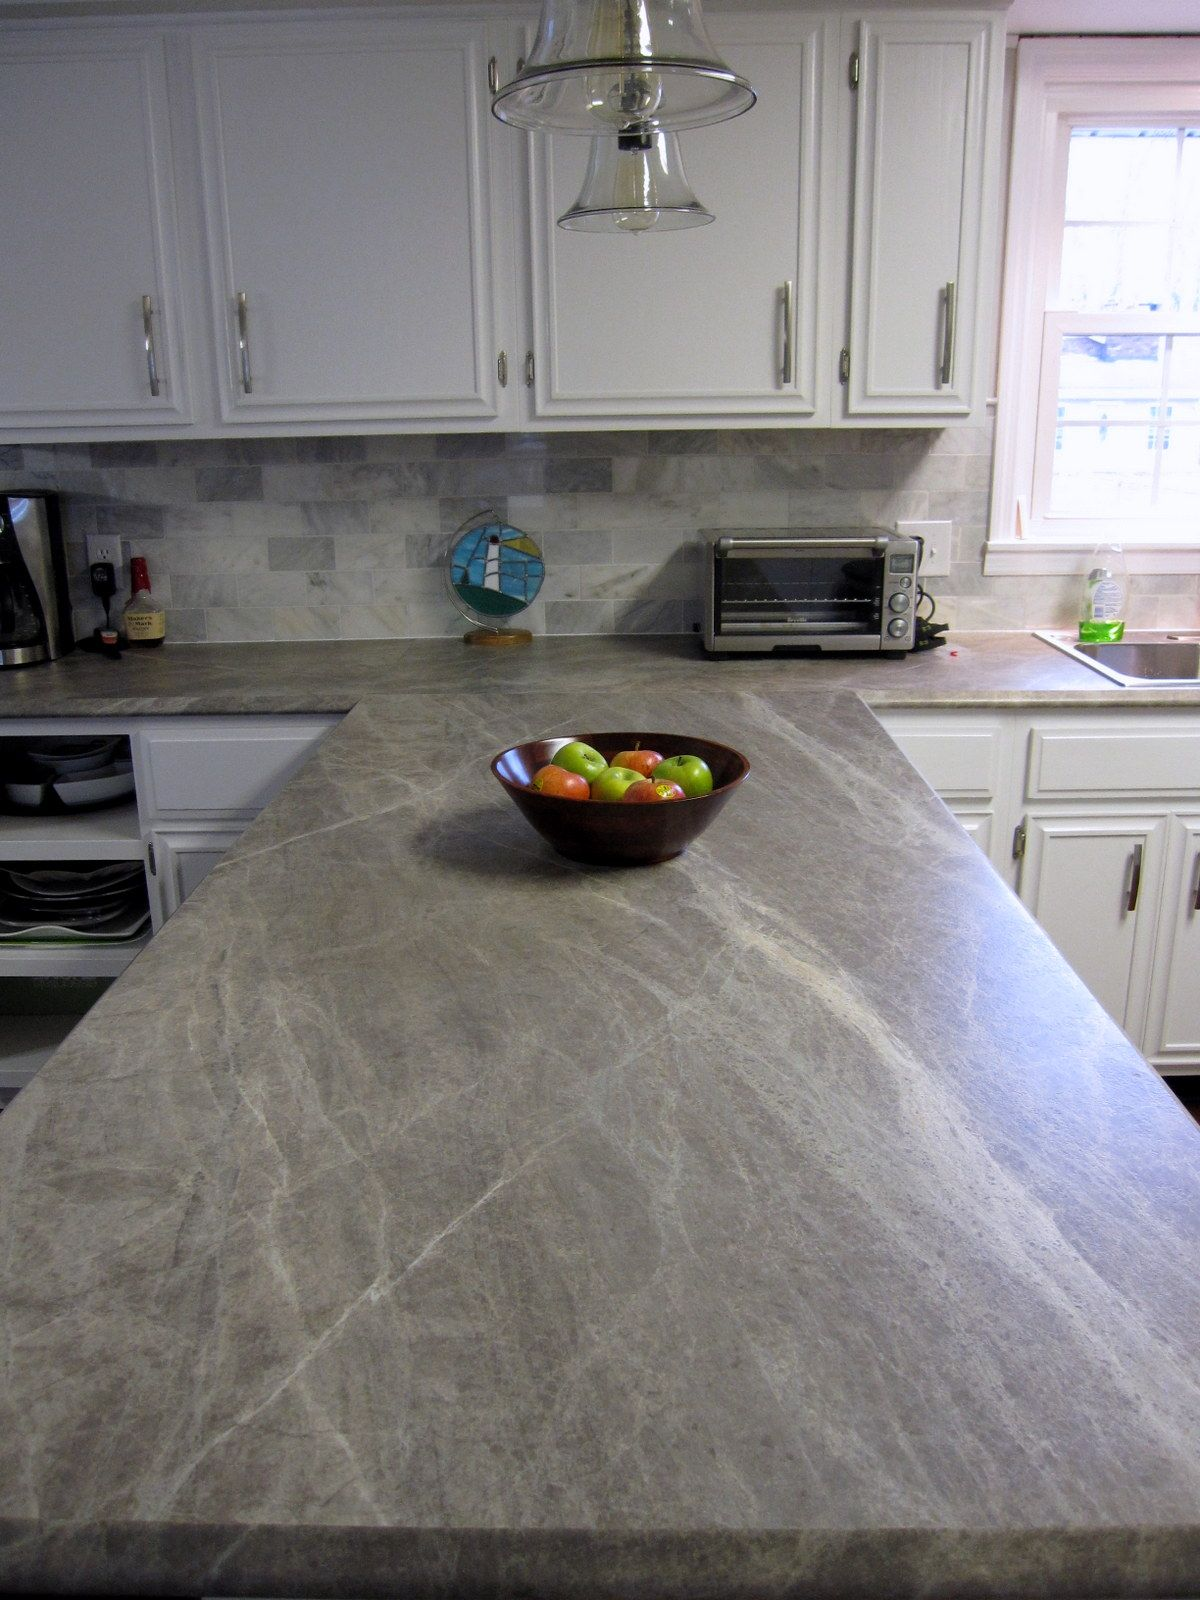 Cocinas Minimalistas Formica 180fx Laminate In Soapstone Sequoia With The Ogee